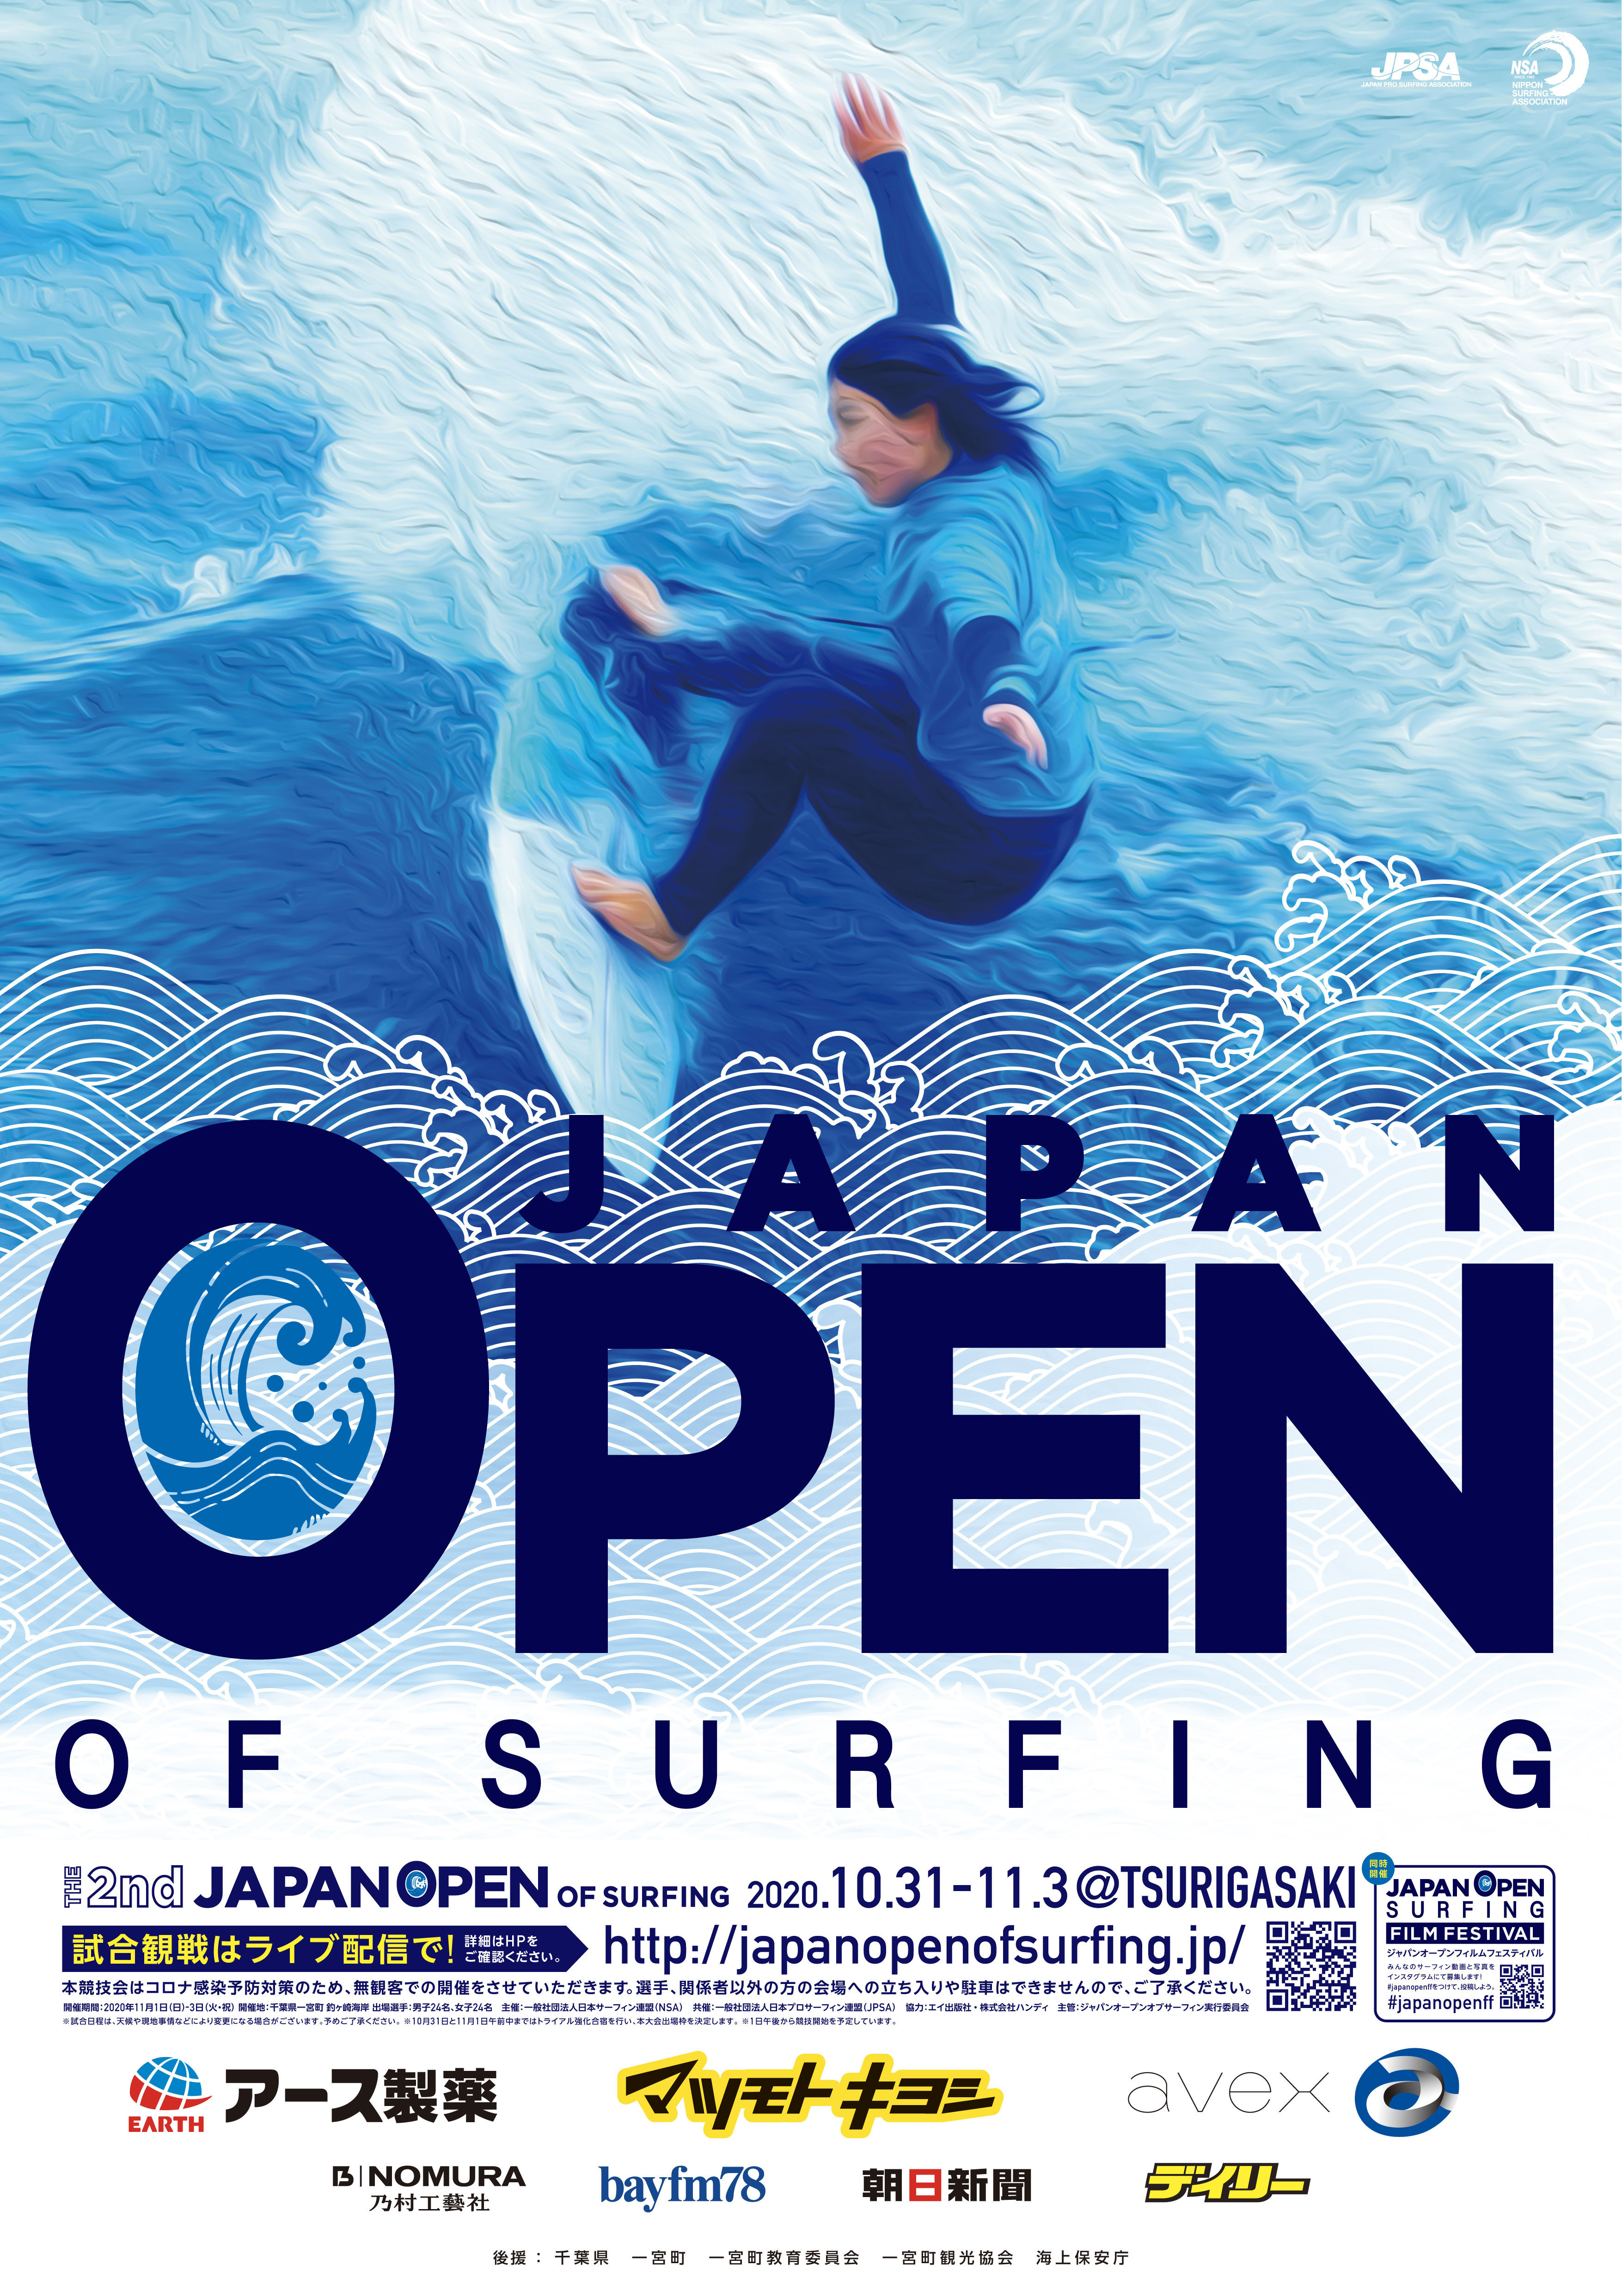 THE 2nd JAPAN OPEN OF SURFING